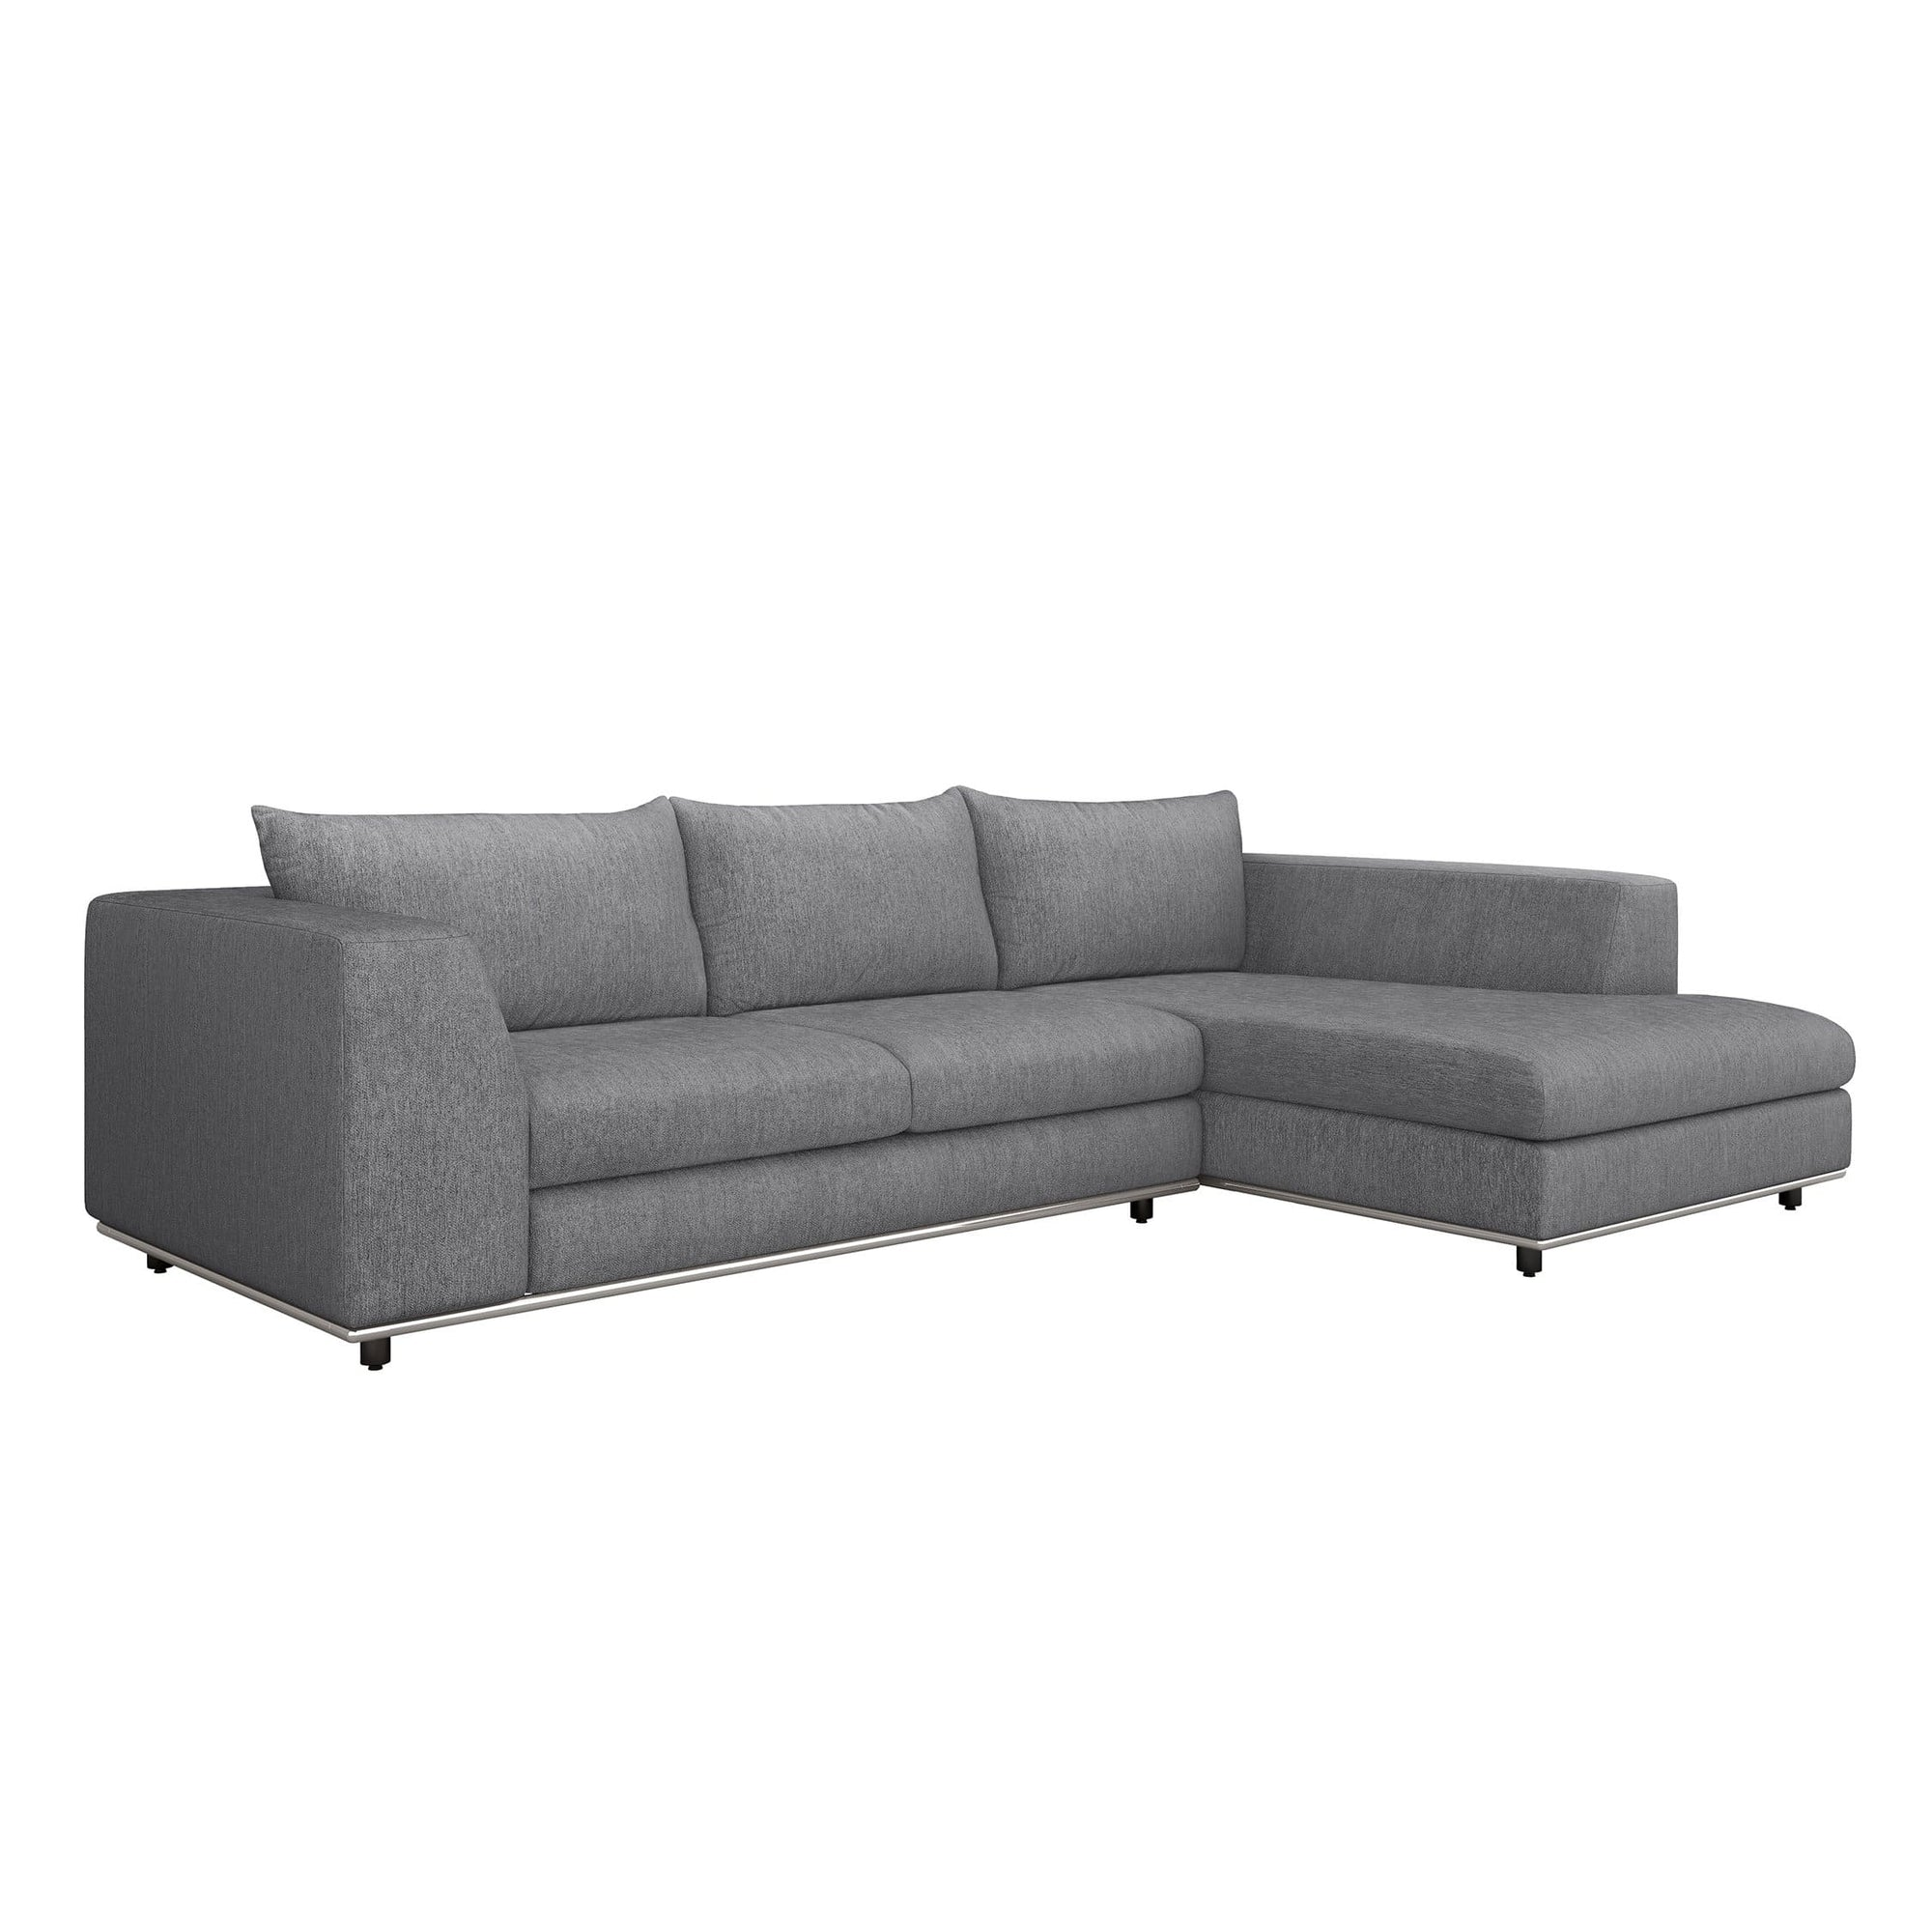 Interlude Home Interlude Home Comodo Right Chaise 2 Piece Sectional - Dark Gray 199019-3